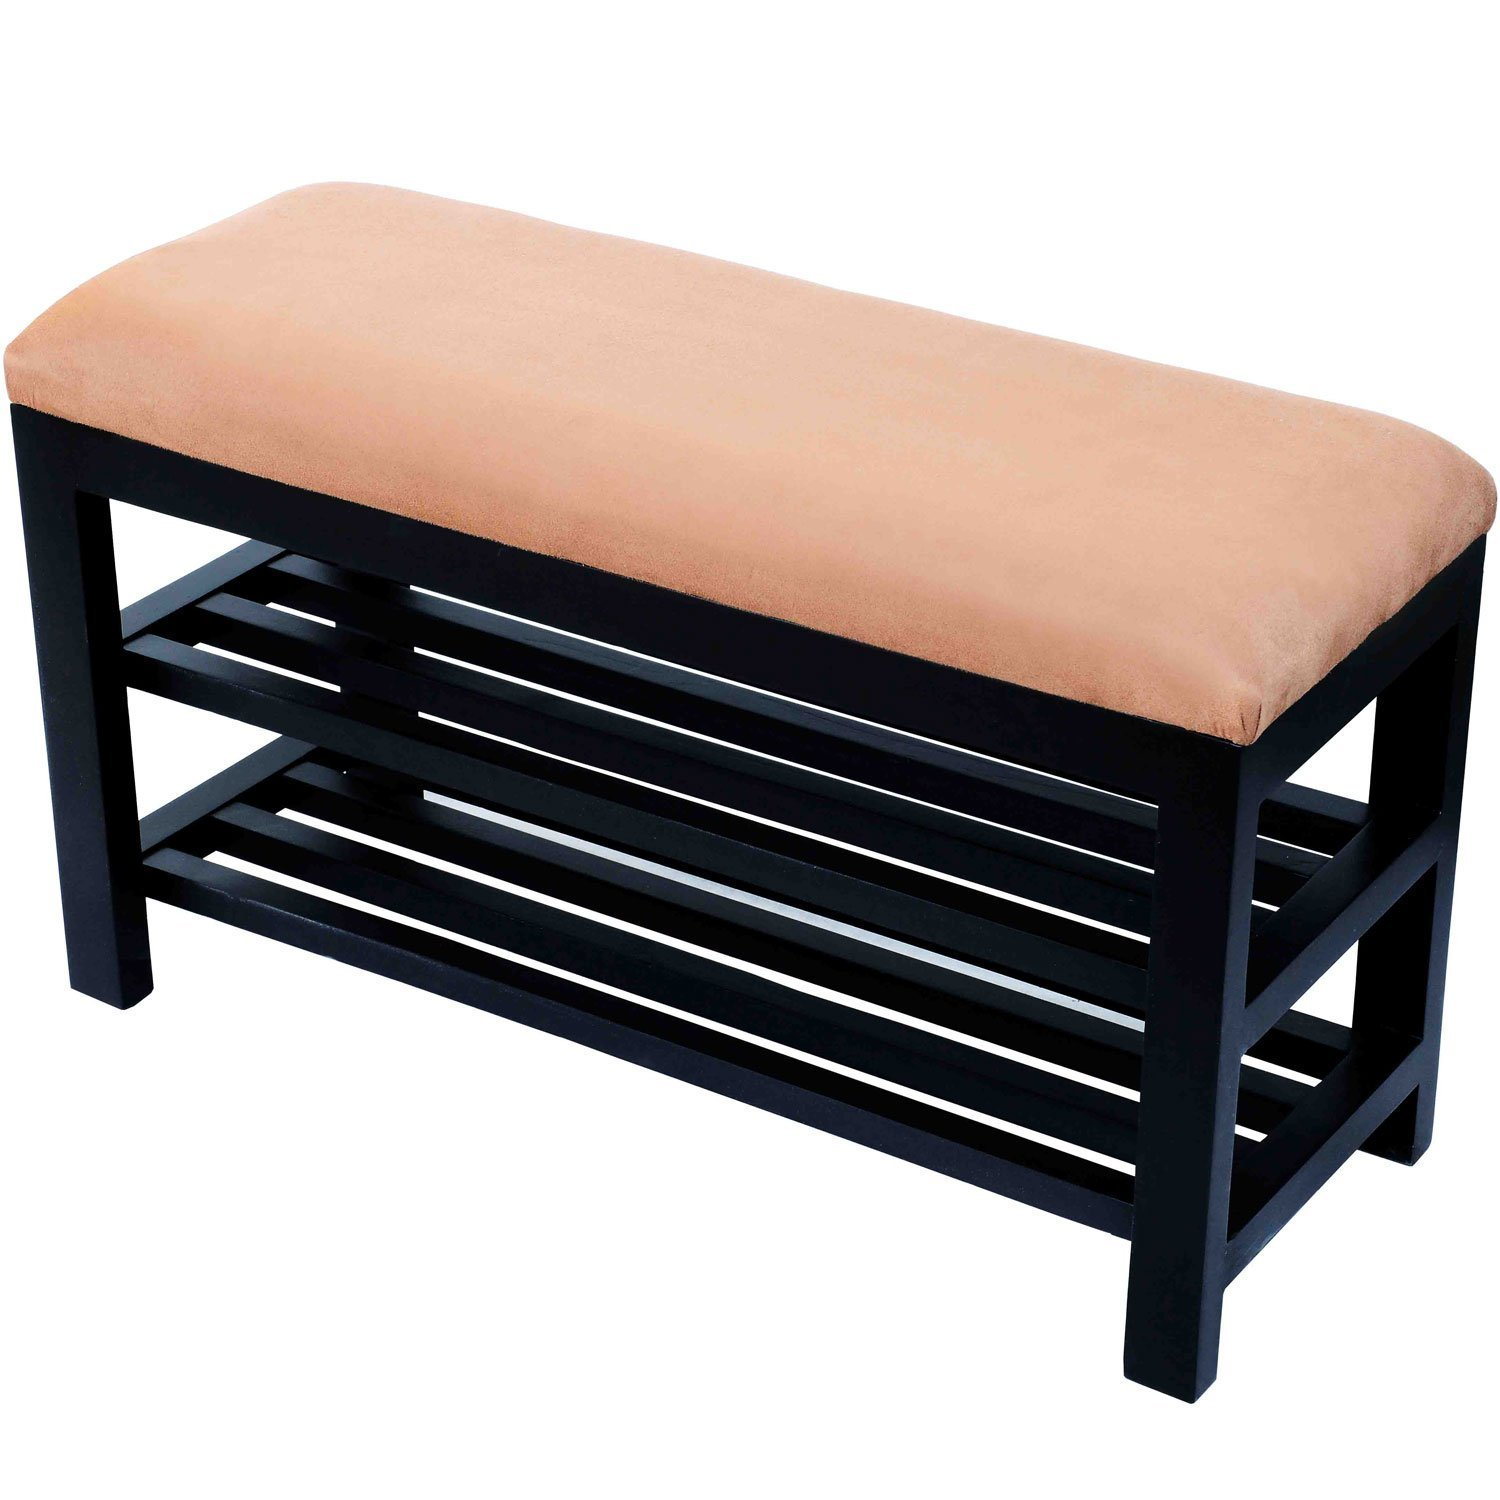 Amazon.com: HomCom Entryway Shoe Storage Organizer Bench - Brown ...